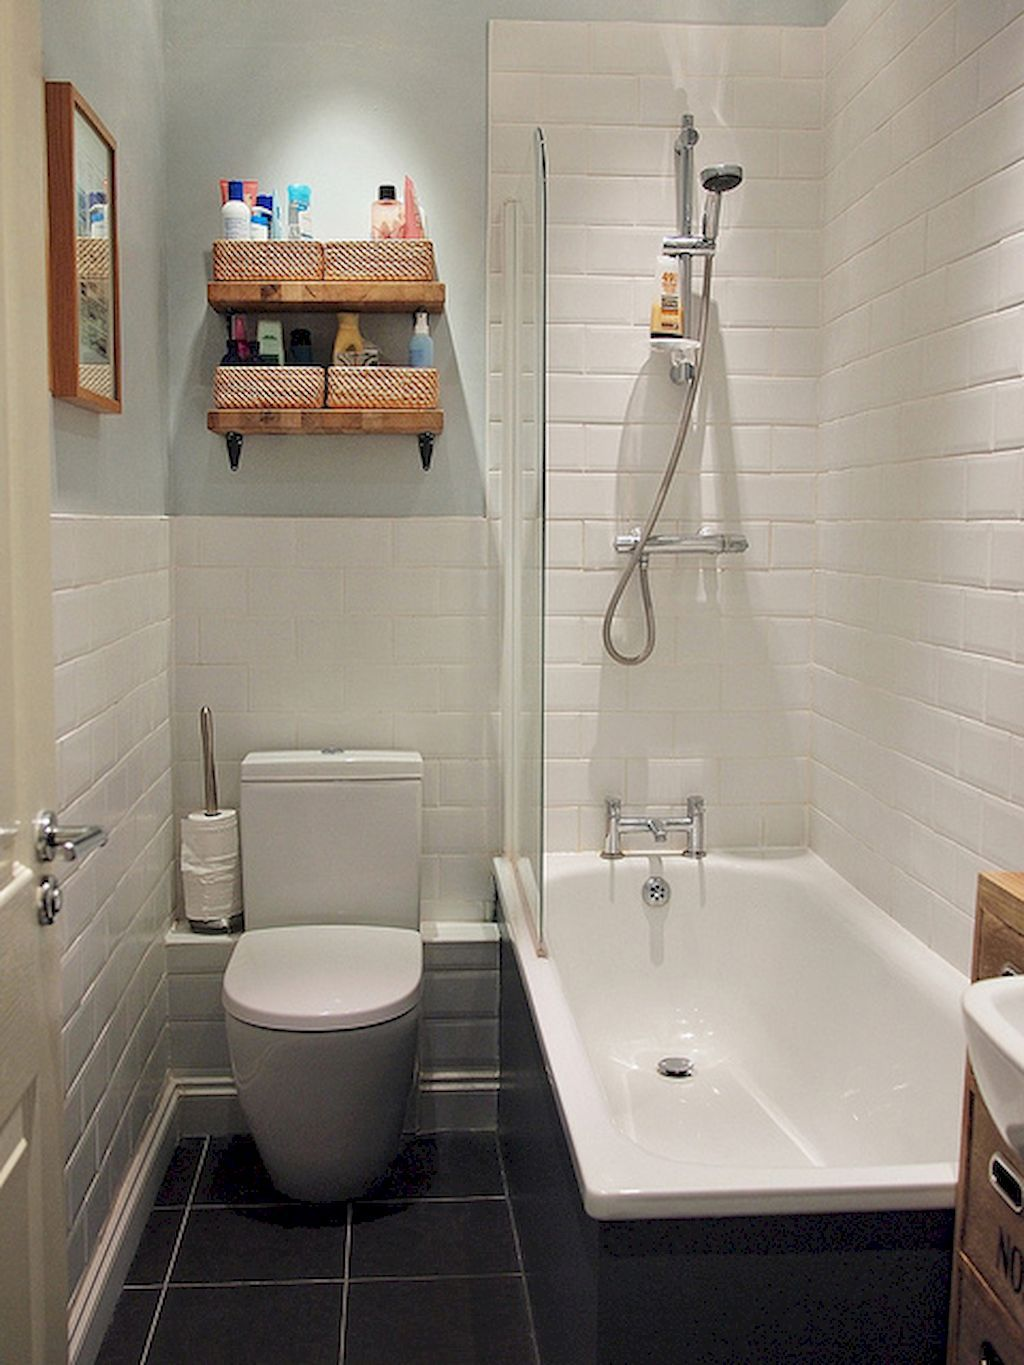 80 Cool Small Master Bathroom Remodel Ideas On A Budget Homevialand Com Bathroom Layout Small Master Bathroom Small Bathroom